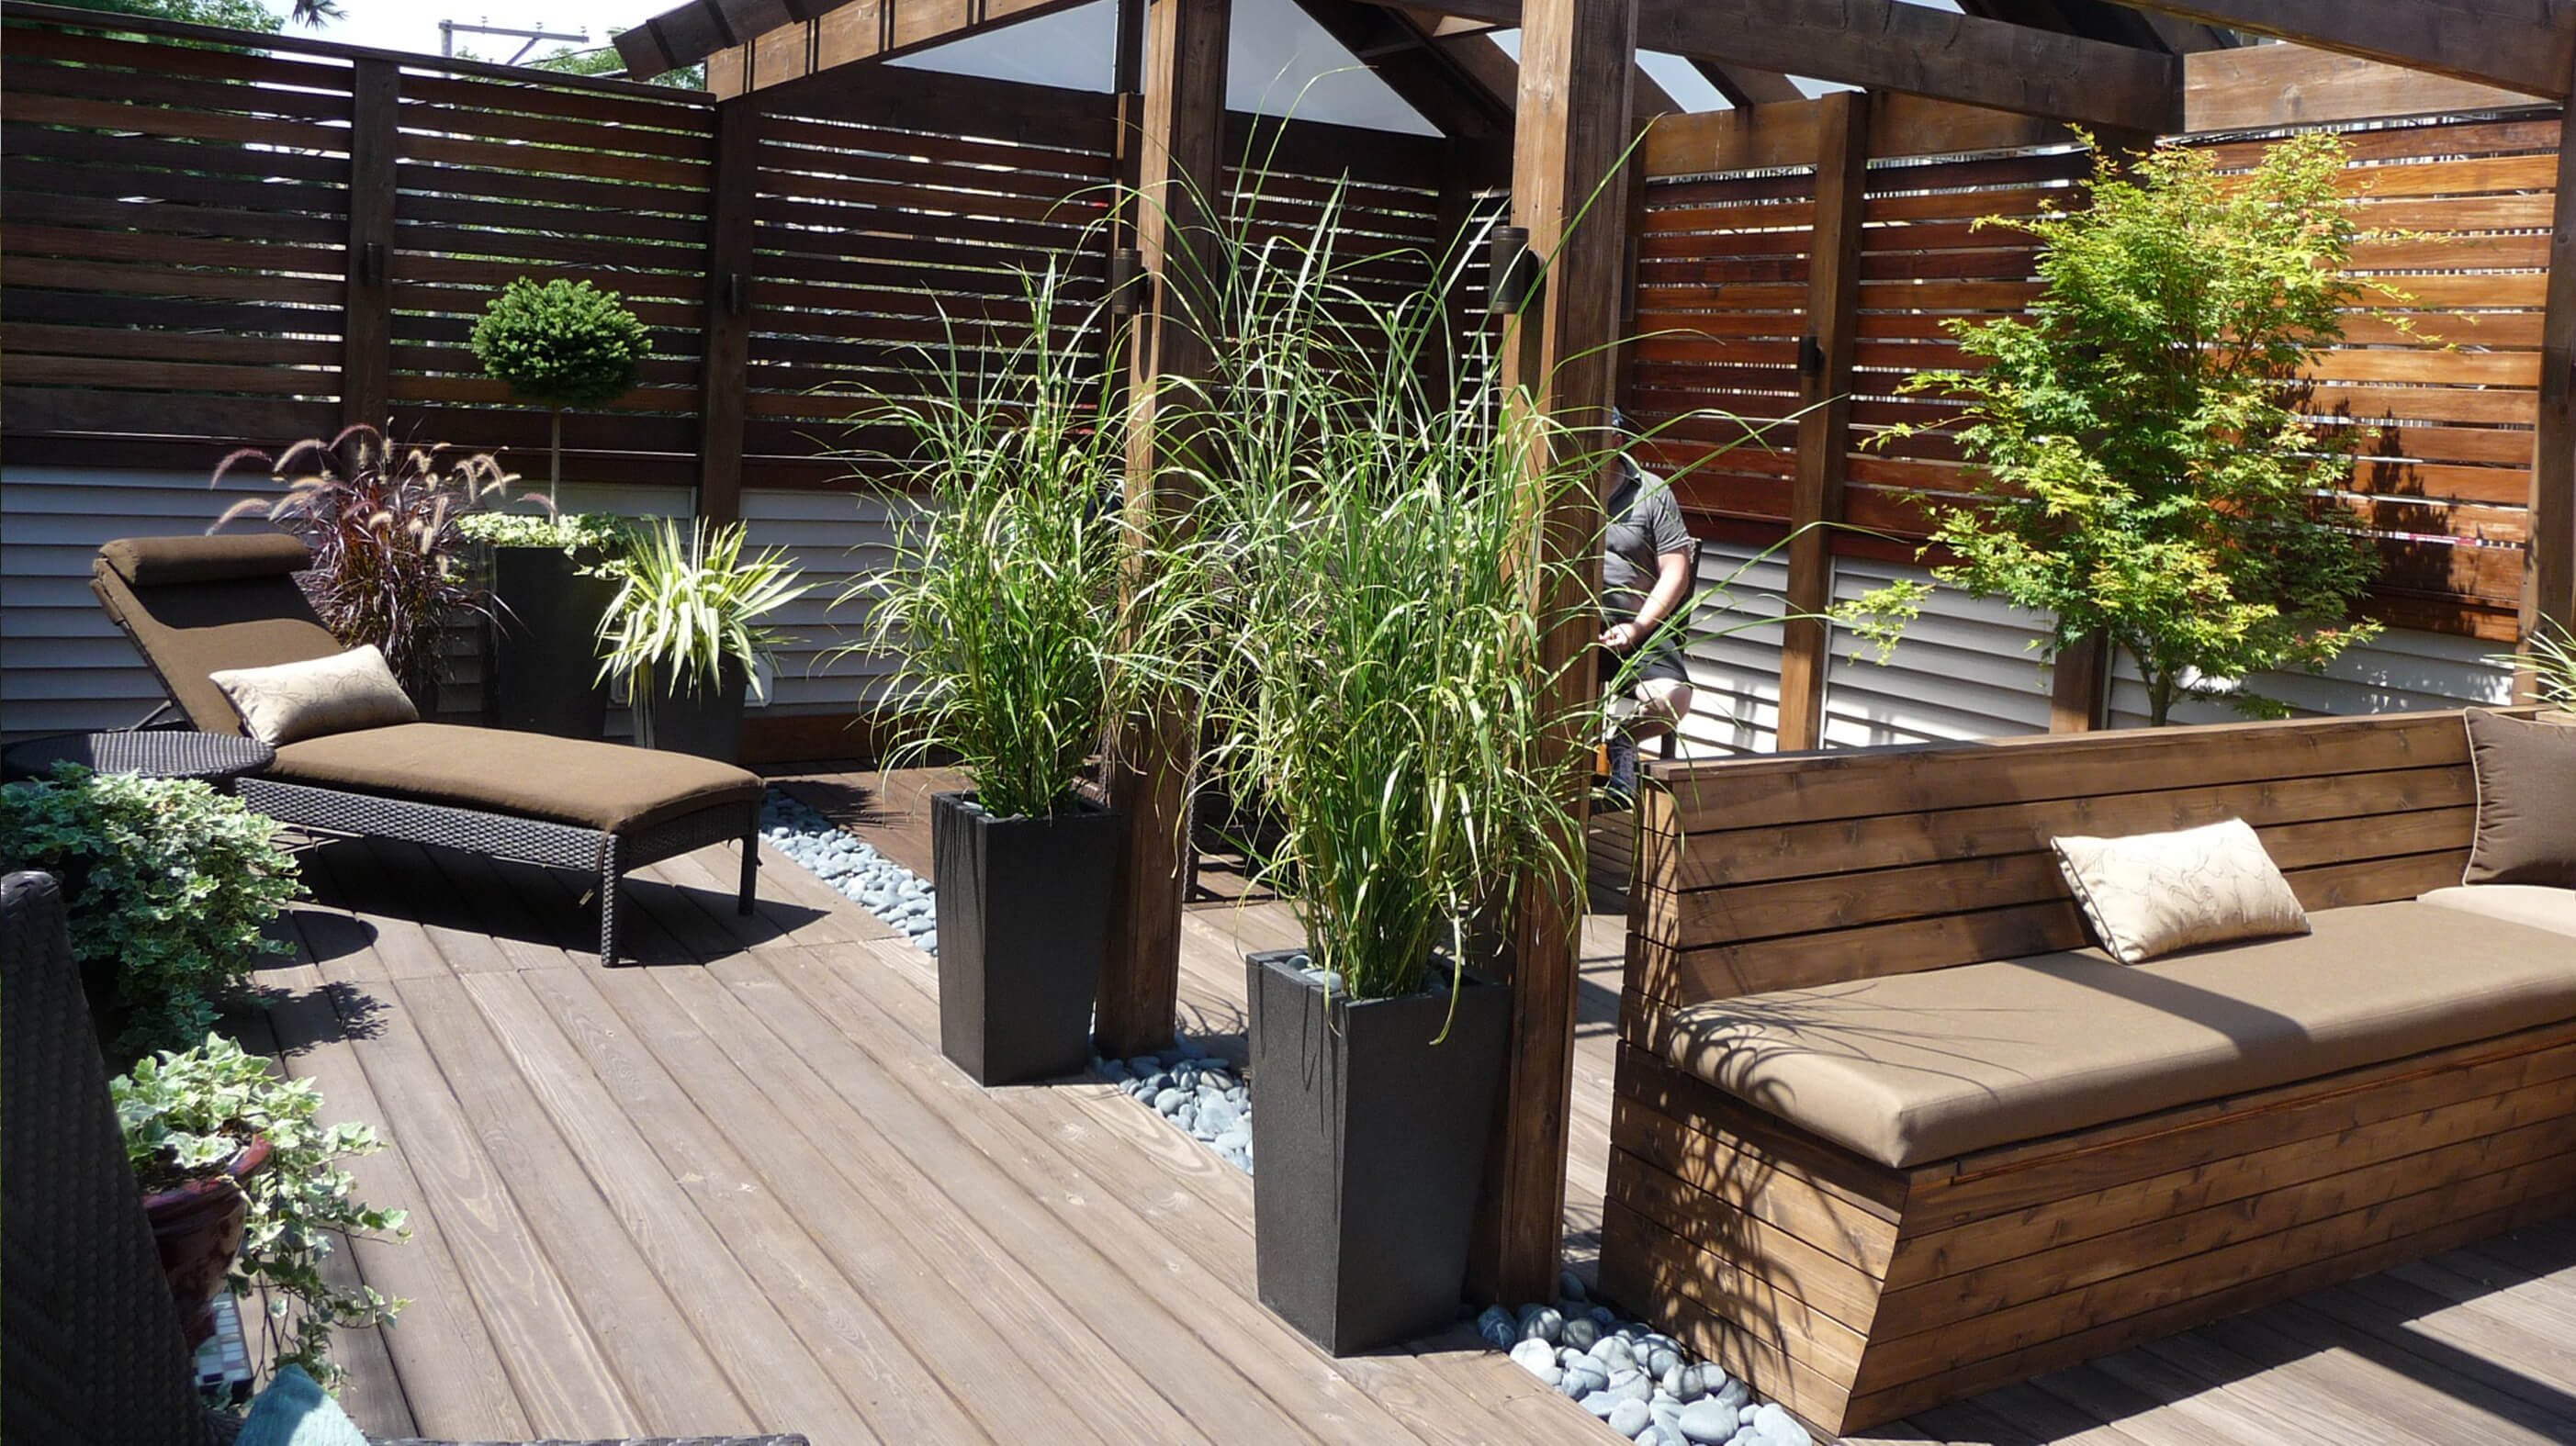 Chicago roof decks pergolas and patios urban rooftops for Rooftop patio garden ideas